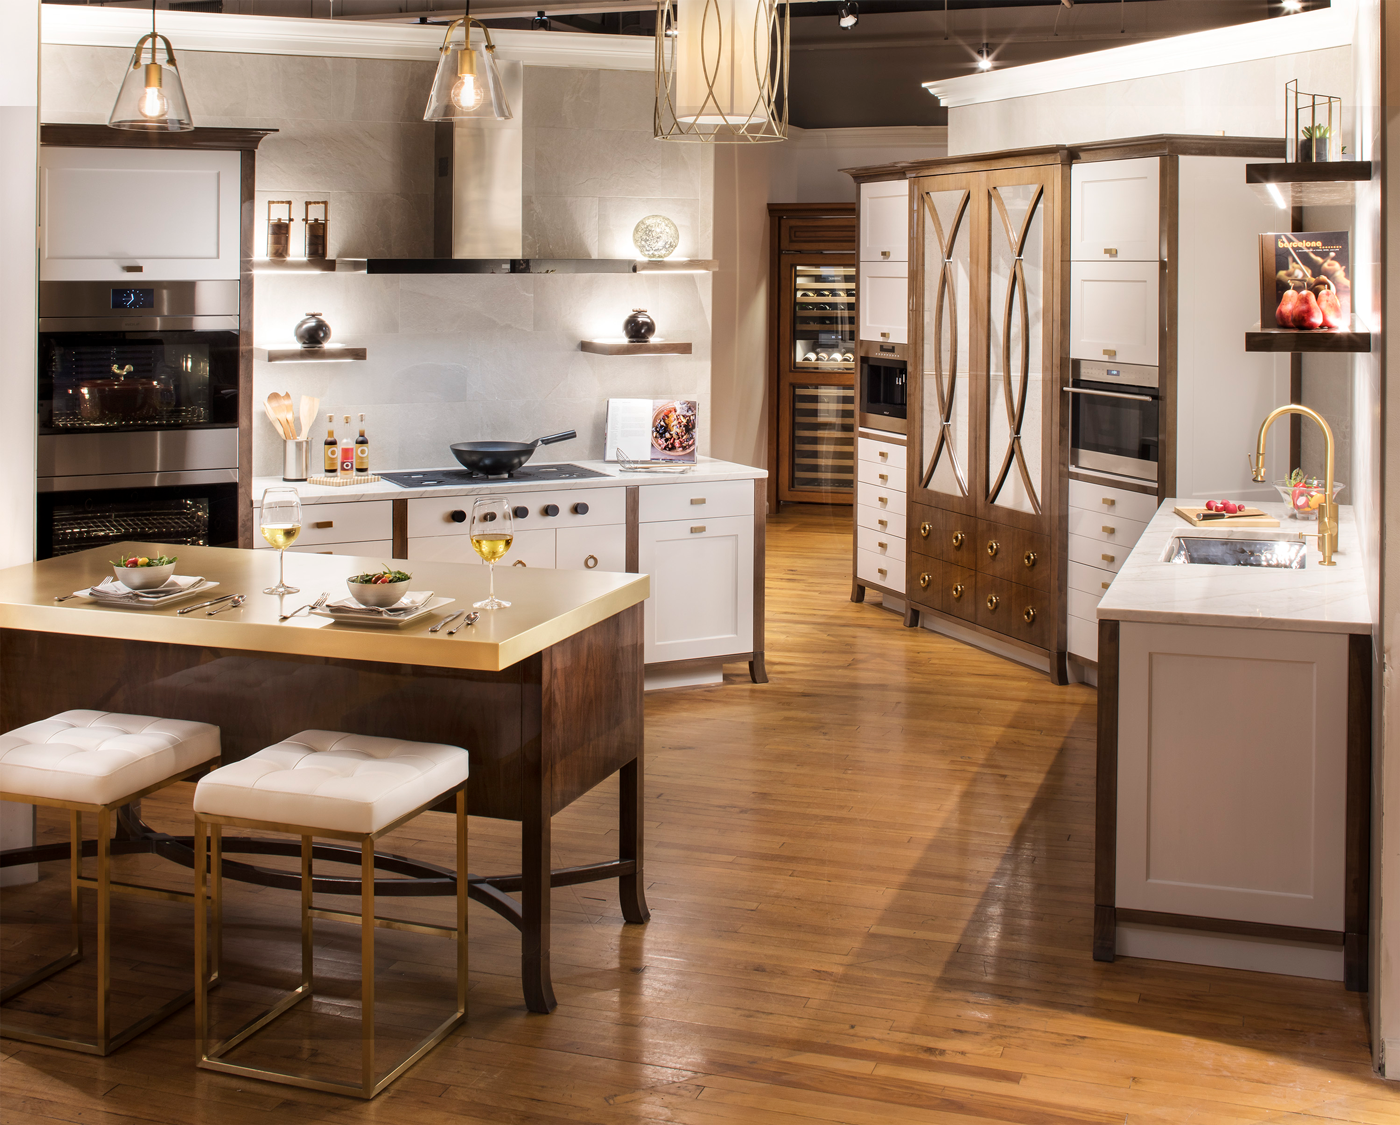 High end kitchen in Clarke showroom with island containing 2 stools and salads and wine